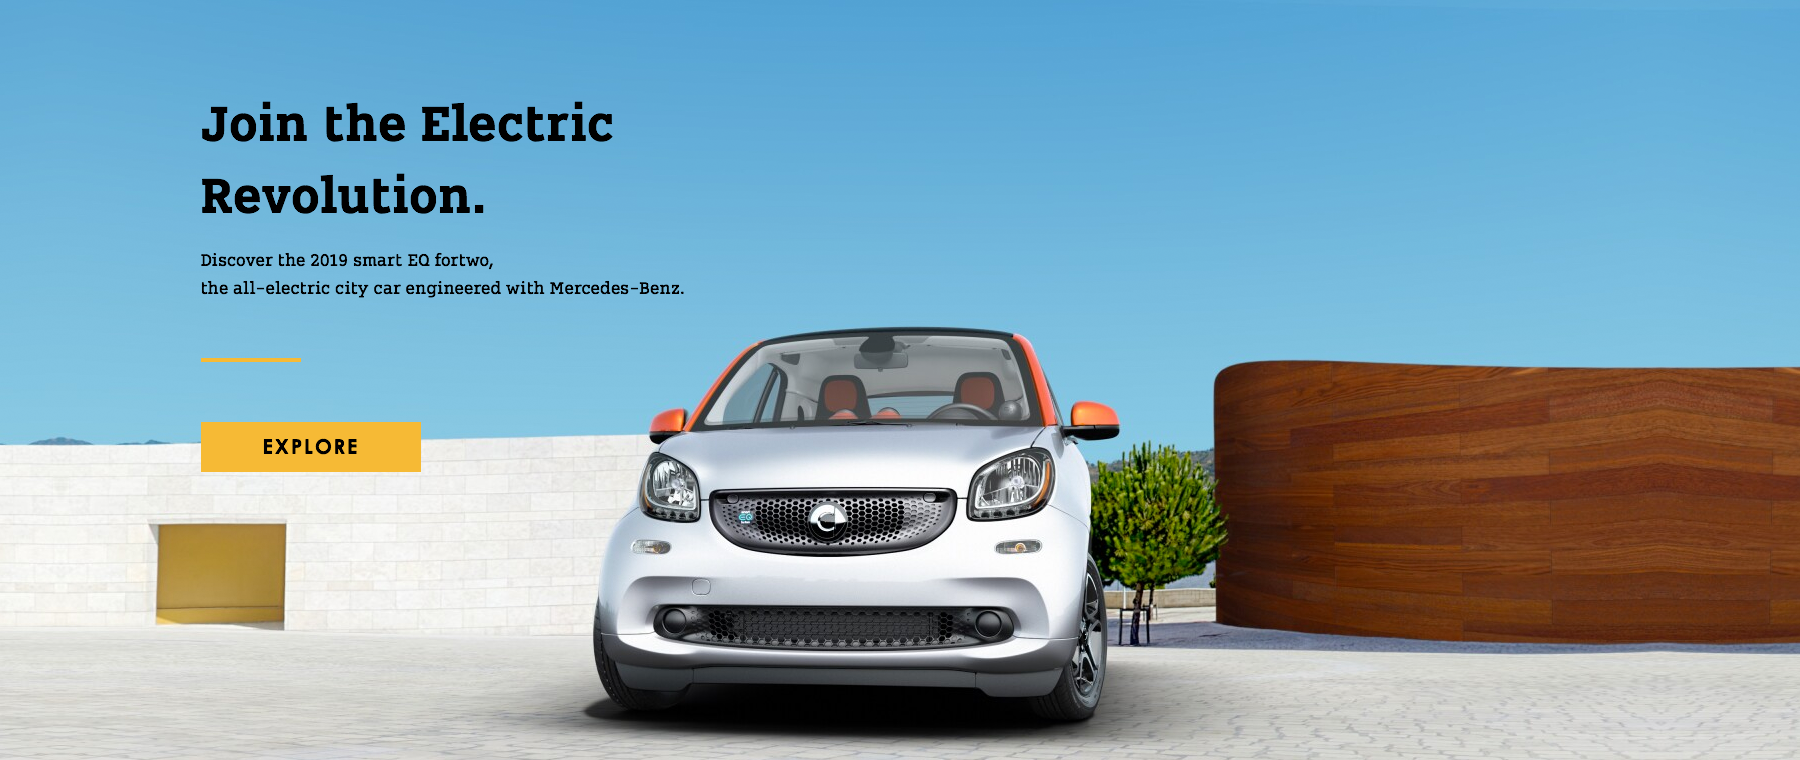 Join the Electric Revolution 2019 smart EQ fortwo